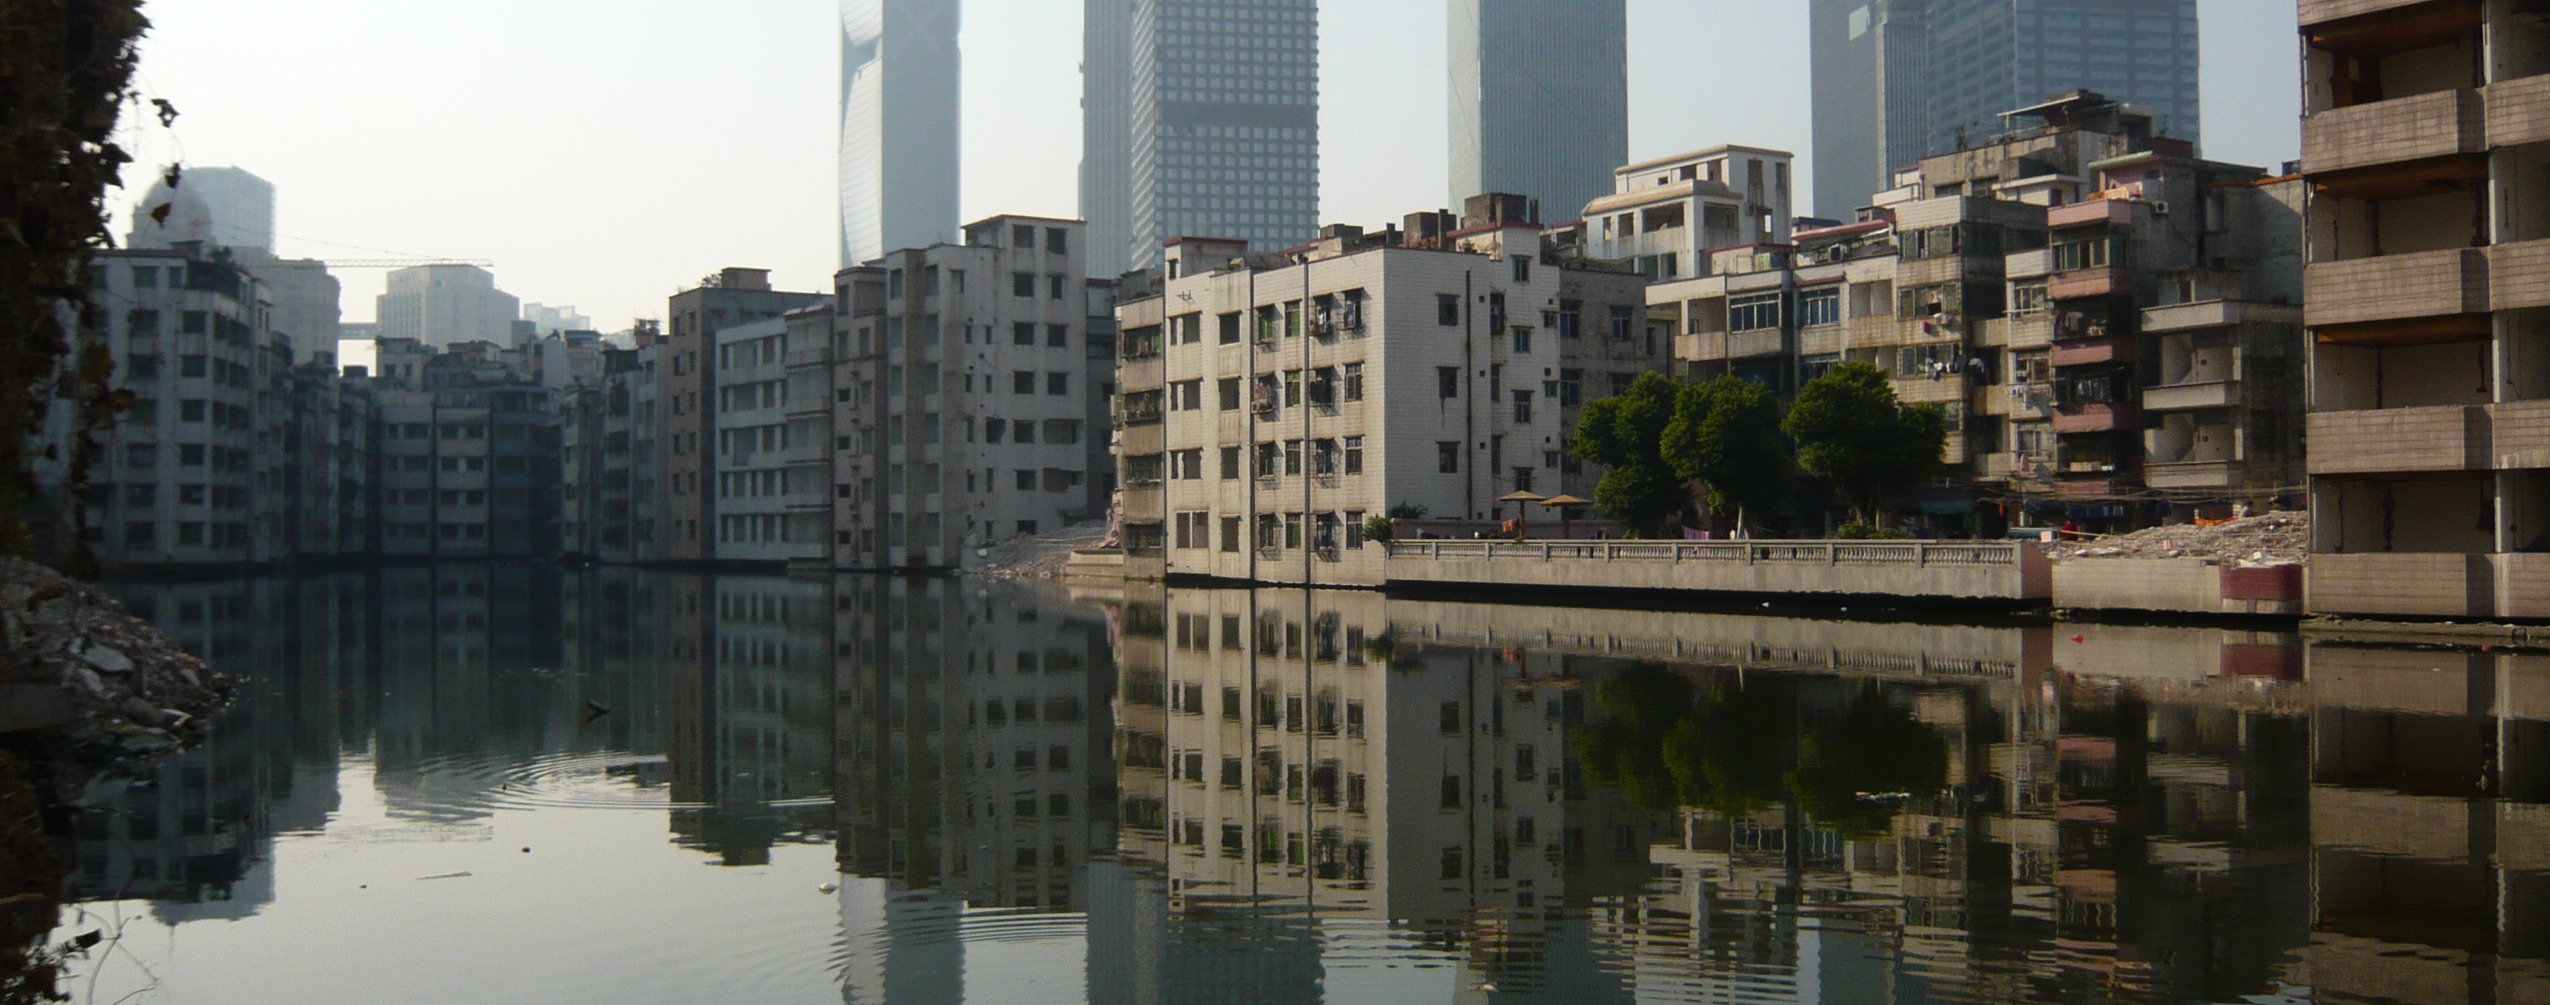 LSE-PKU Summer School, Beijing, 8-19 August 2016Speculative Urbanisation in Asia